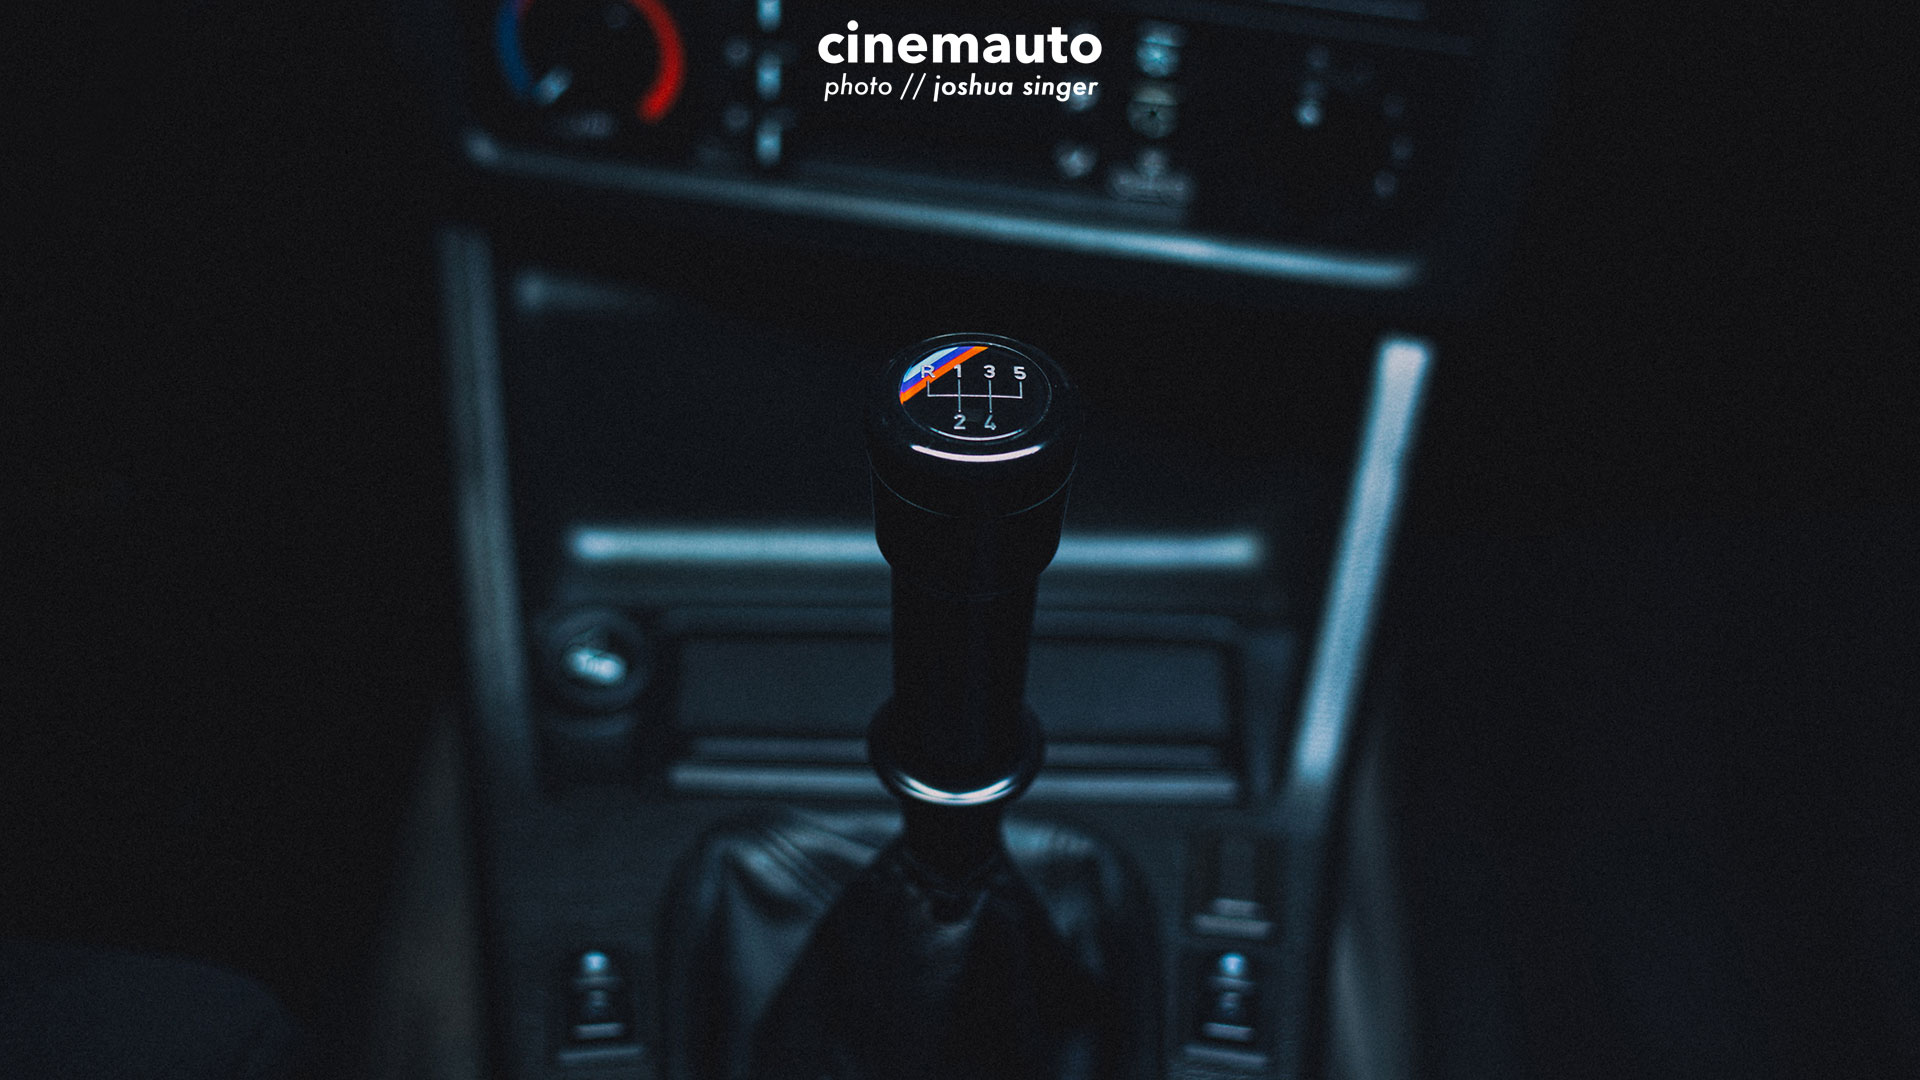 cinemauto-wichita-automotive-videography-midwest-car-cinematography-kk12.jpg